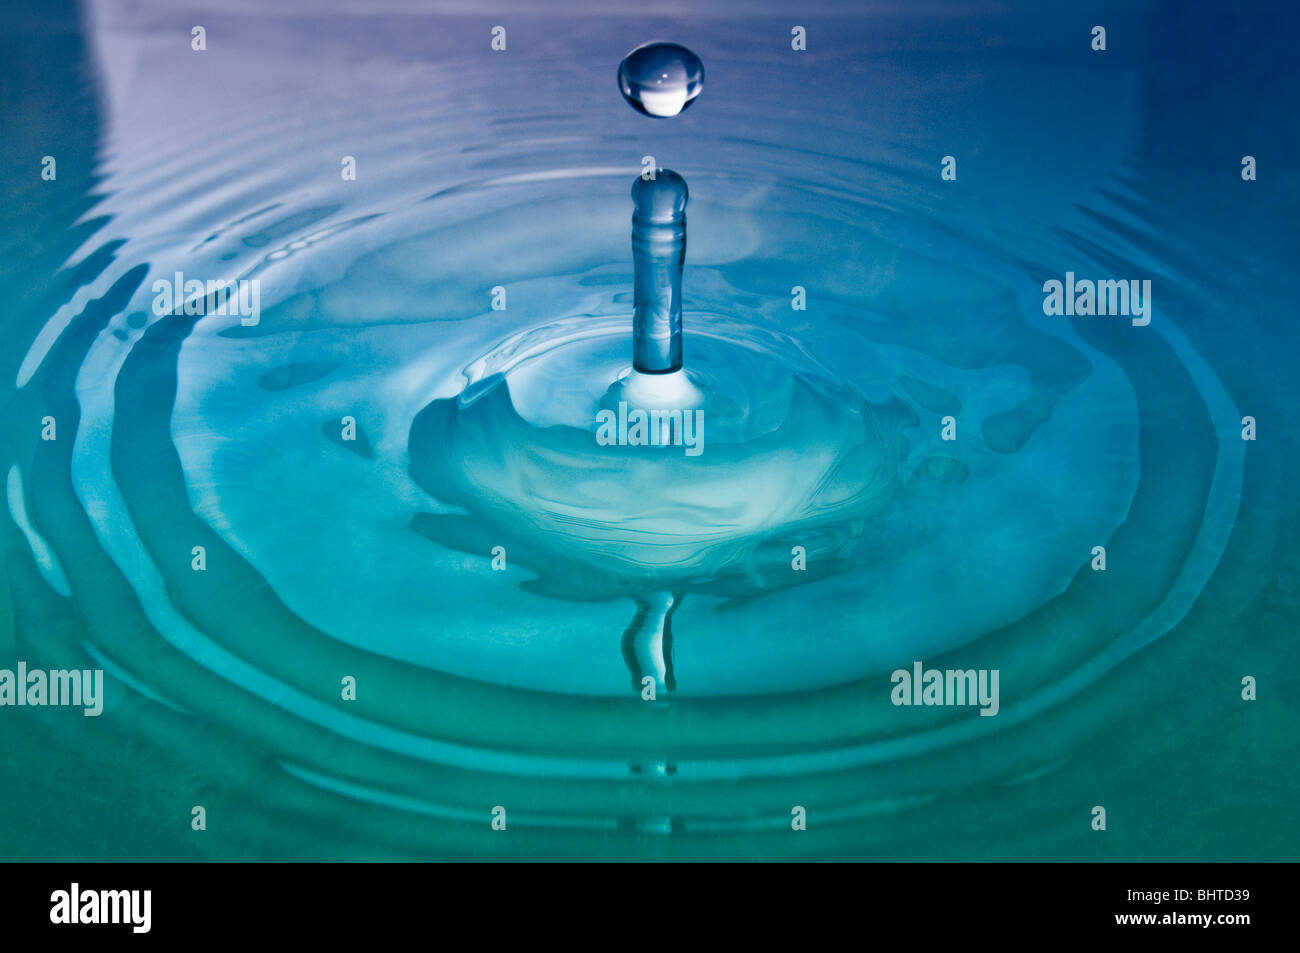 A drop of water hitting the surface - Stock Image